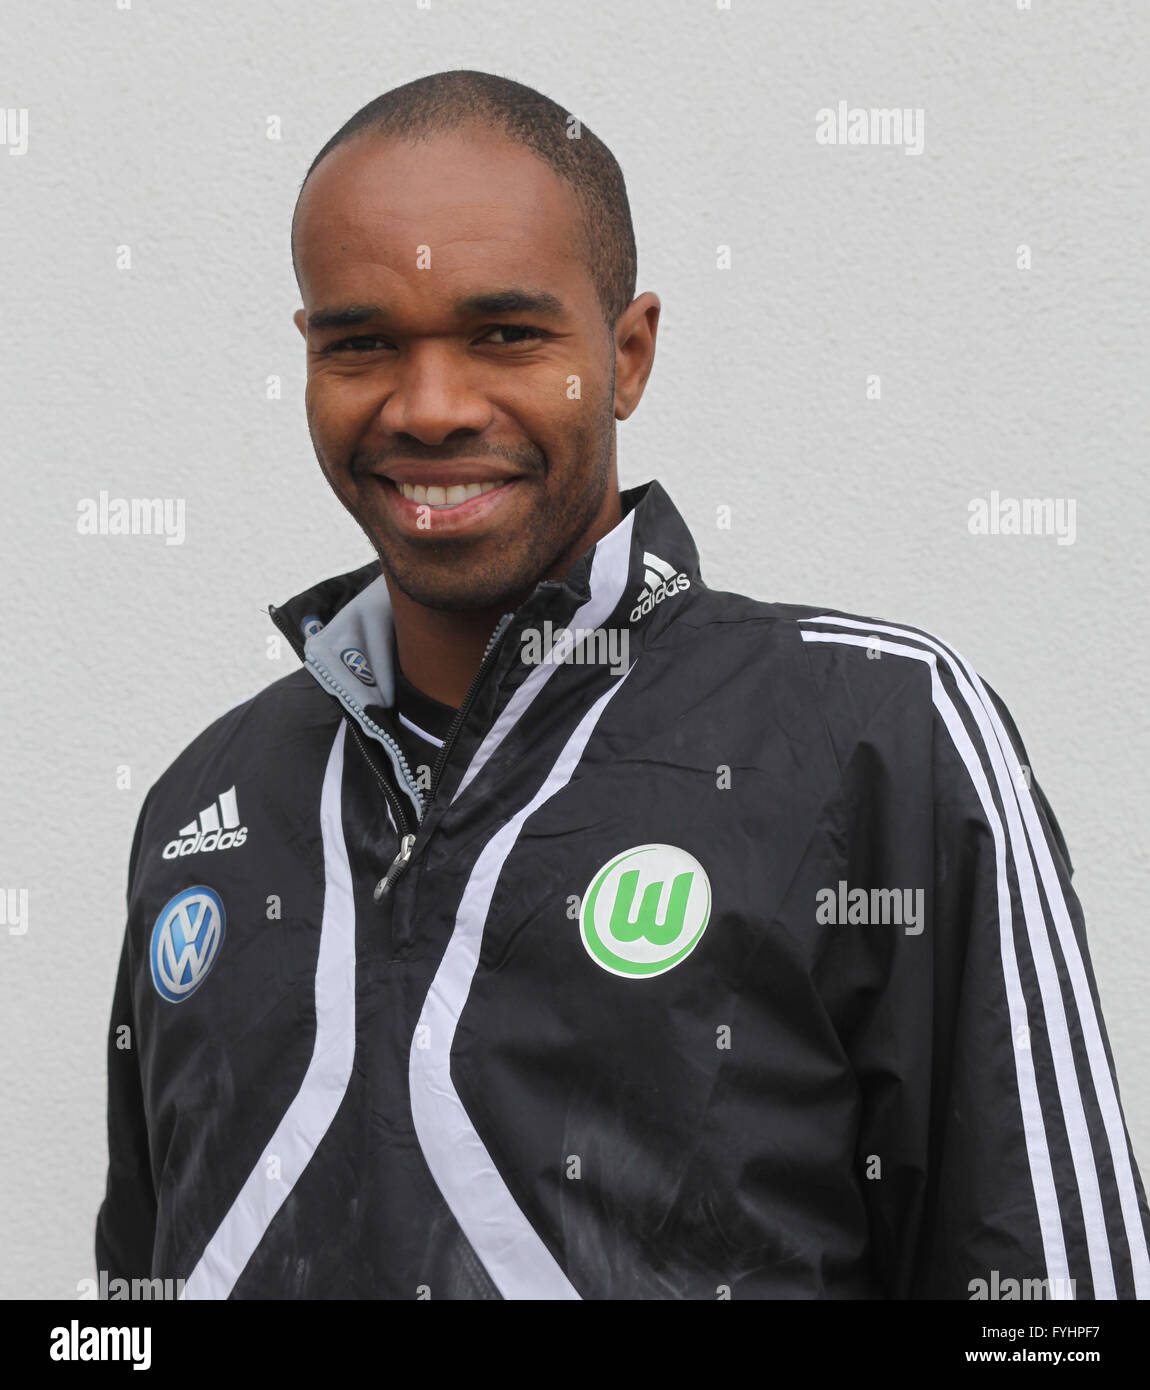 Naldo (VfL Wolfsburg) Stock Photo